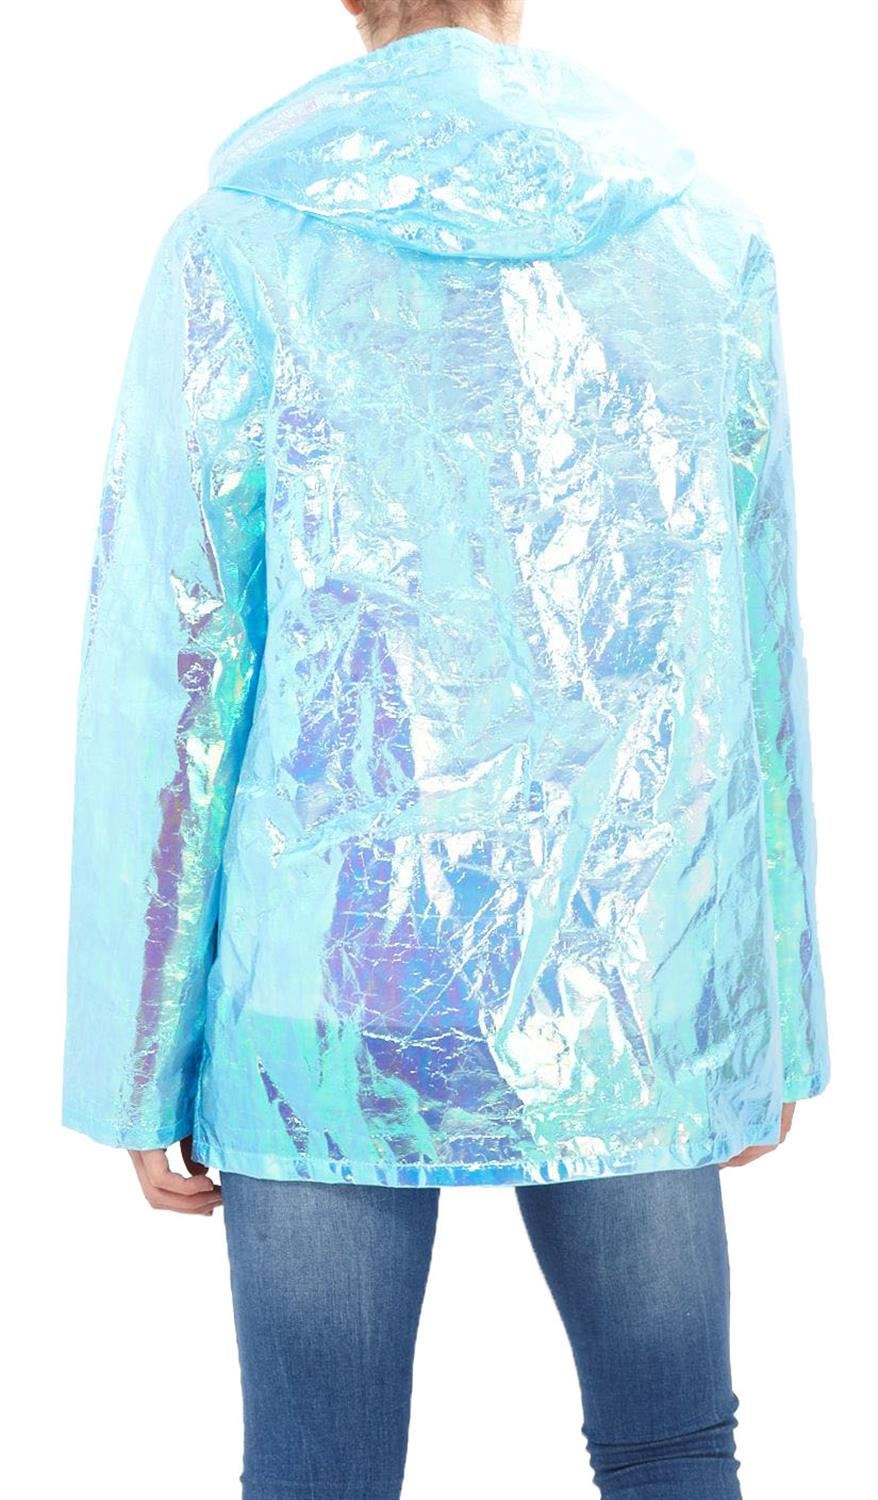 Womens-Waterproof-Holographic-Zipped-Neon-Festival-Mac-Jacket-Parka-Raincoat thumbnail 16